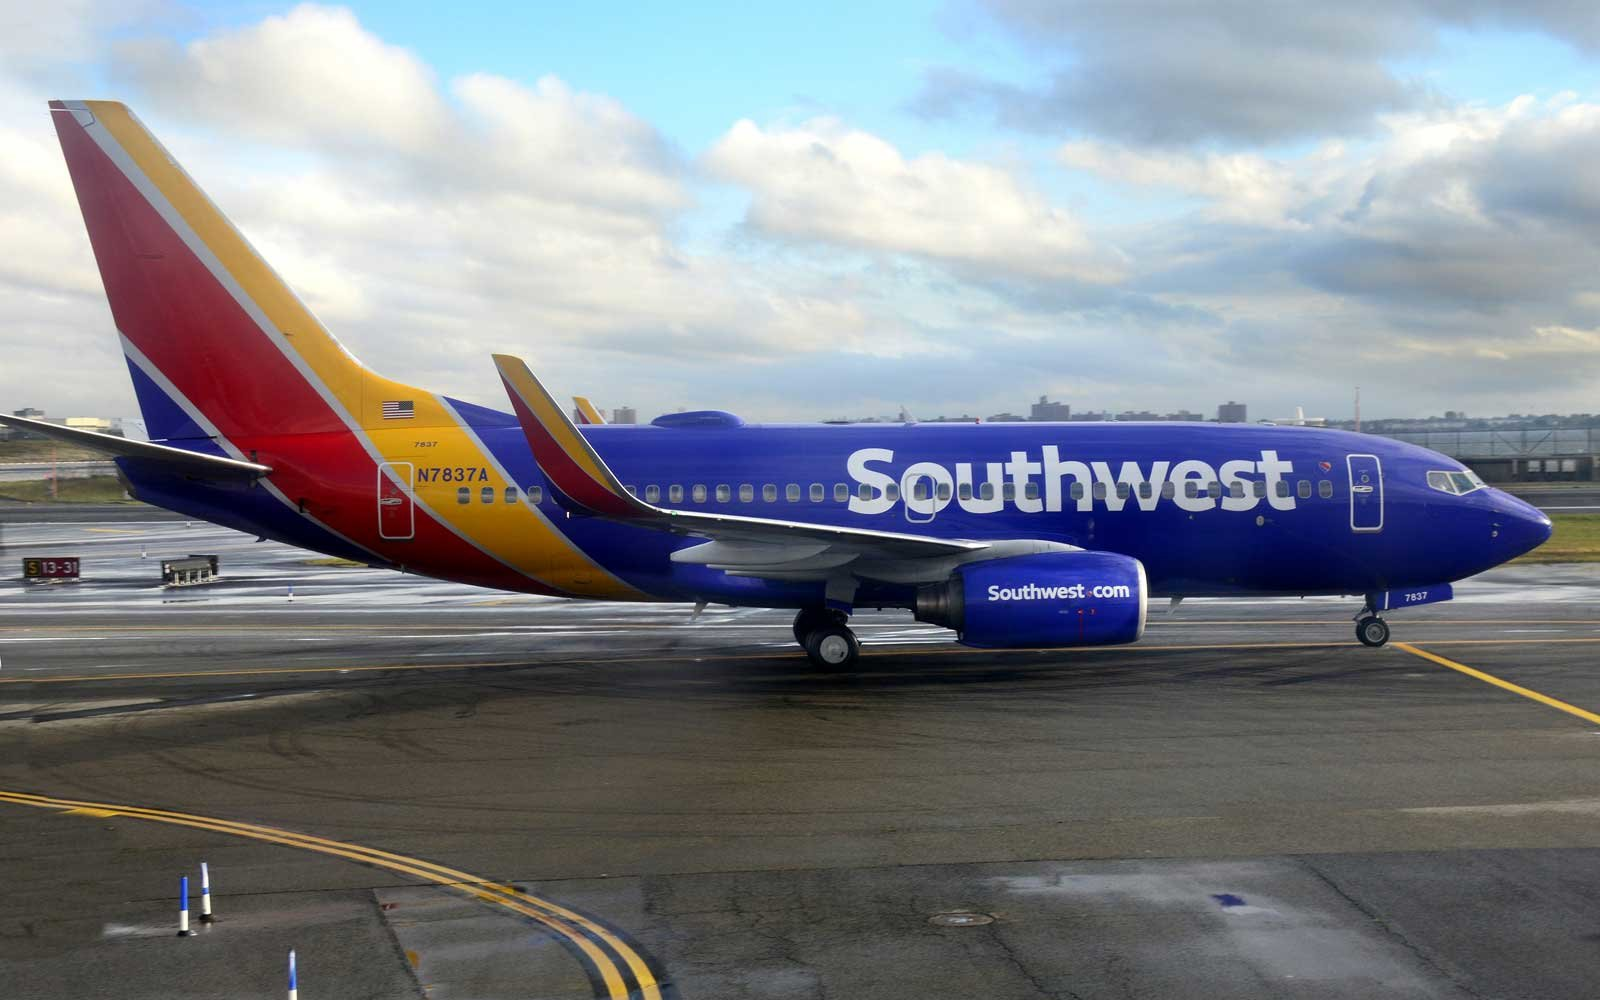 A Southwest Airlines Boeing 737 passenger